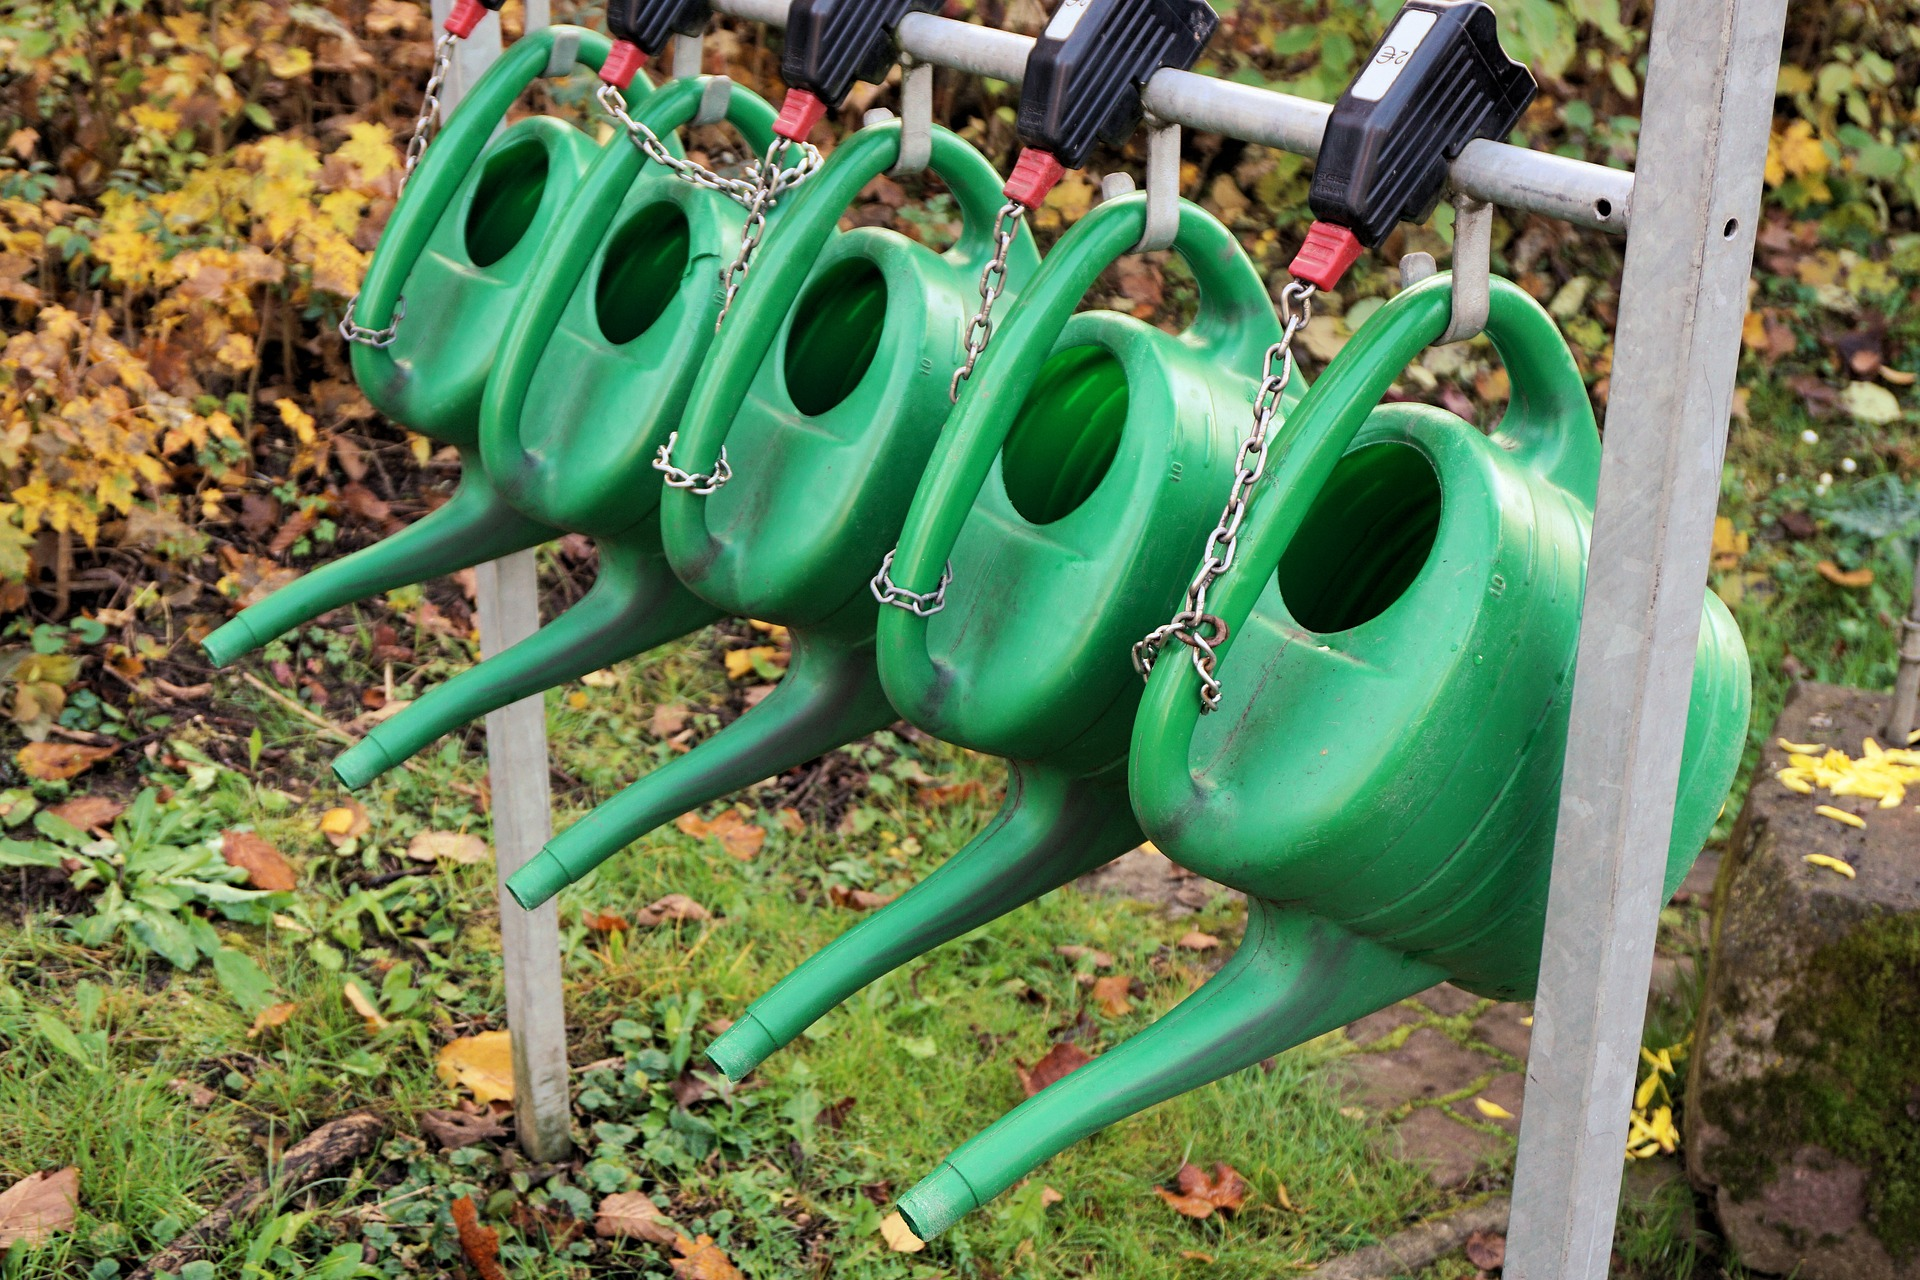 17002 watering cans 1039265 1920